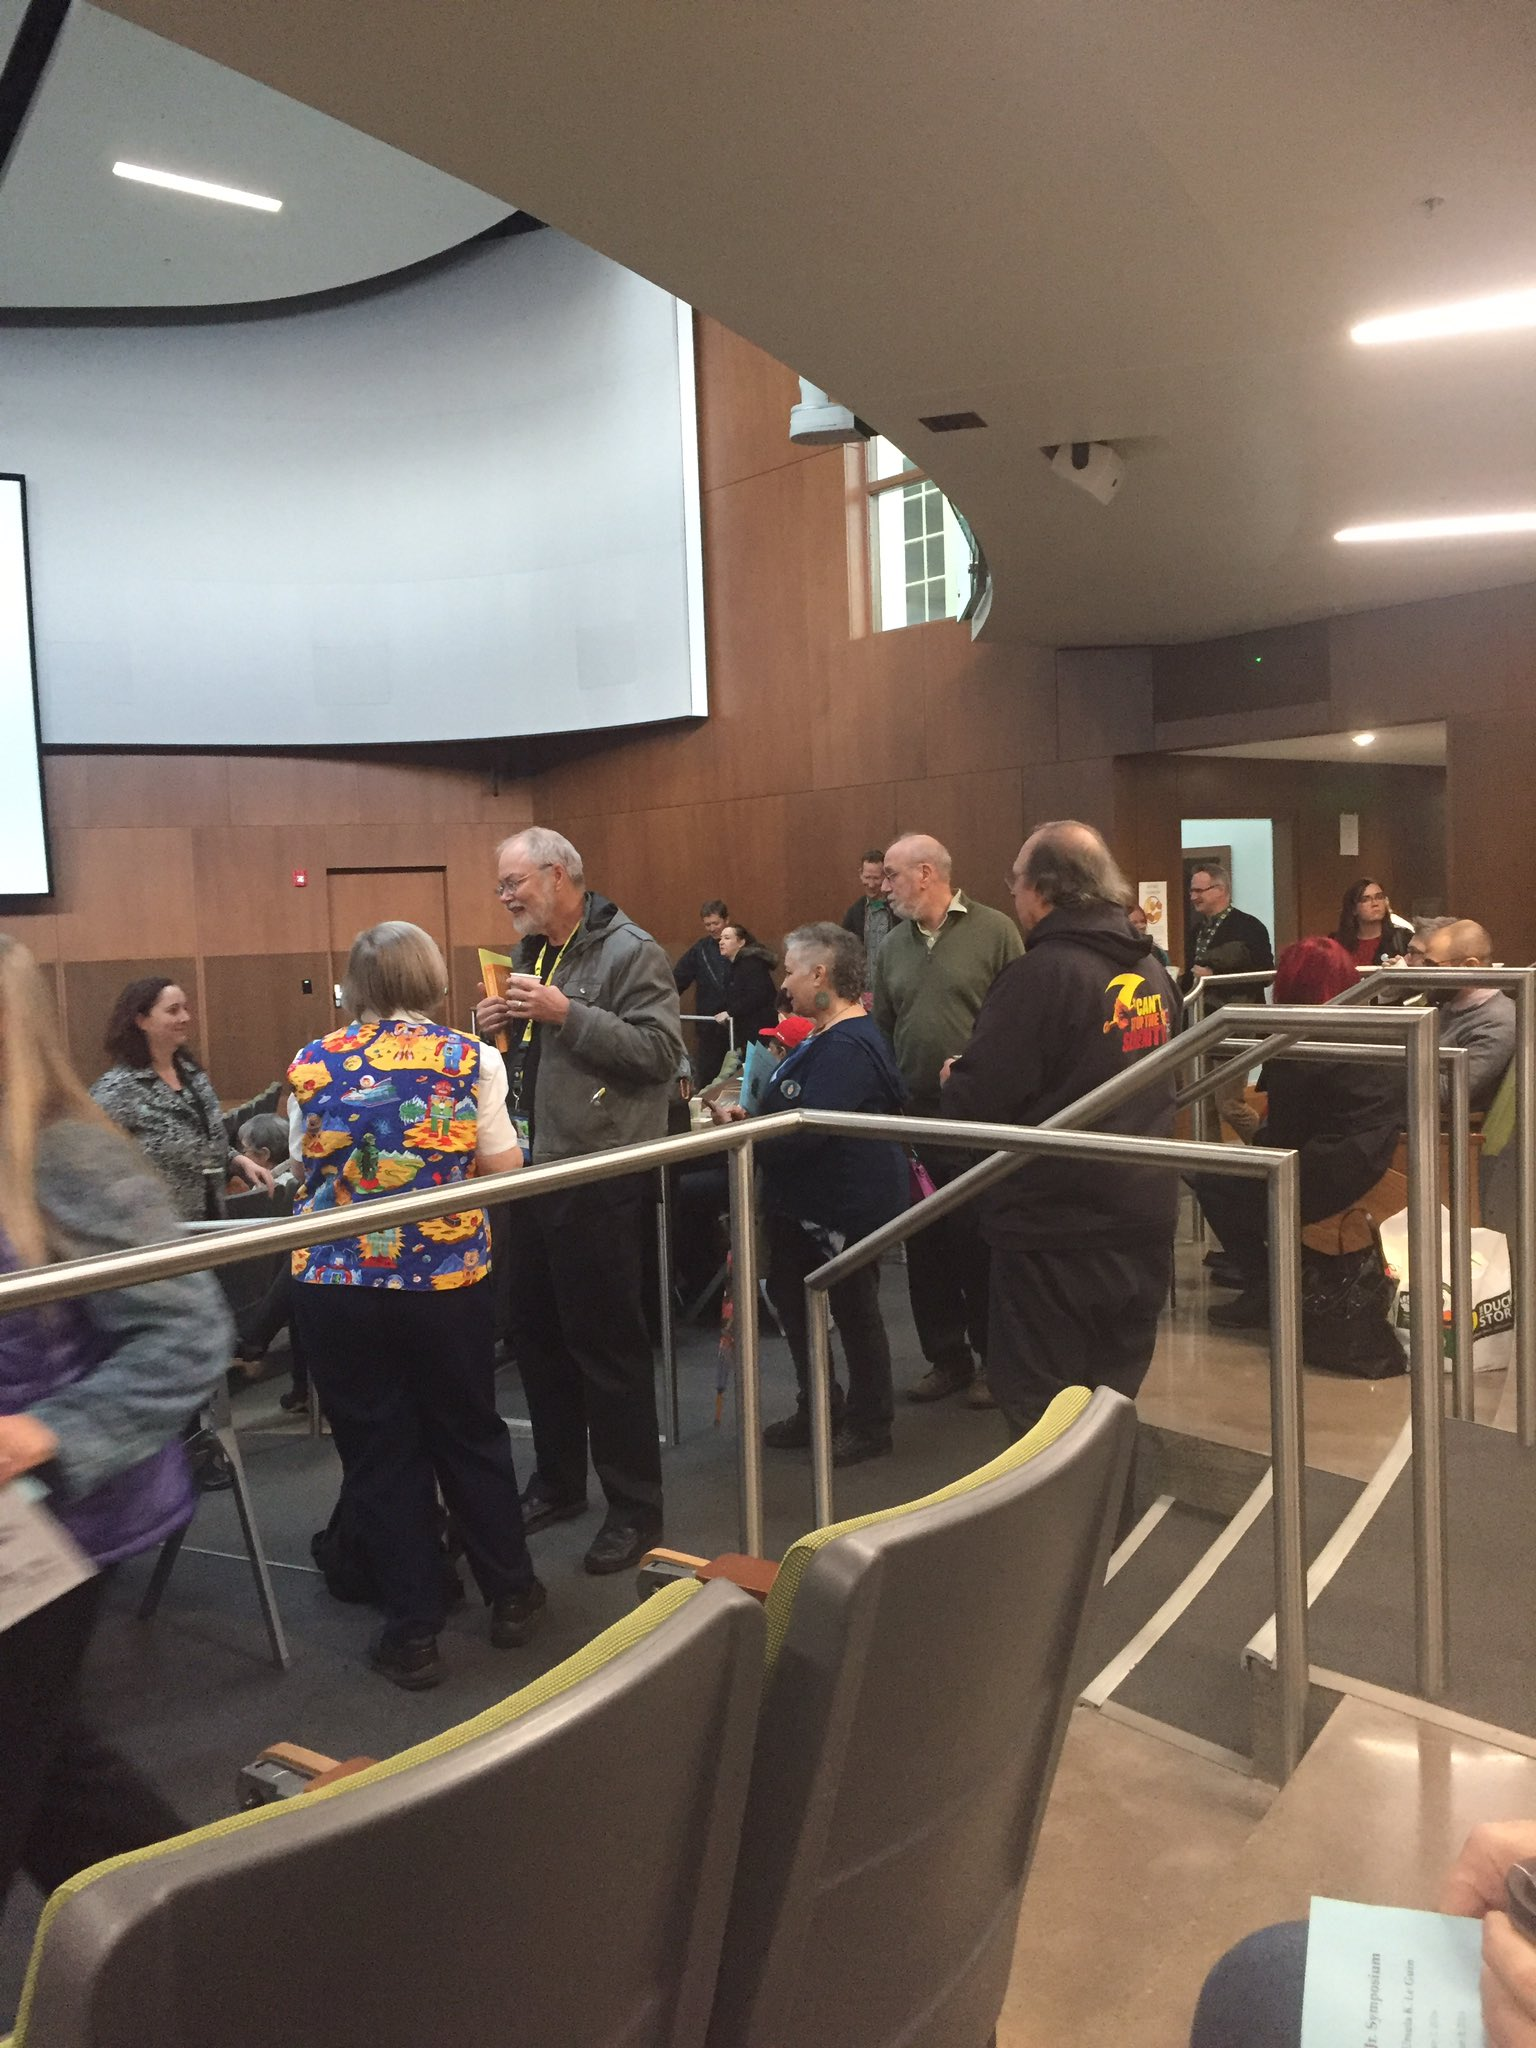 Le Guin symposium participants and audience arriving. #tiptree16 https://t.co/W5MVmqLlVw